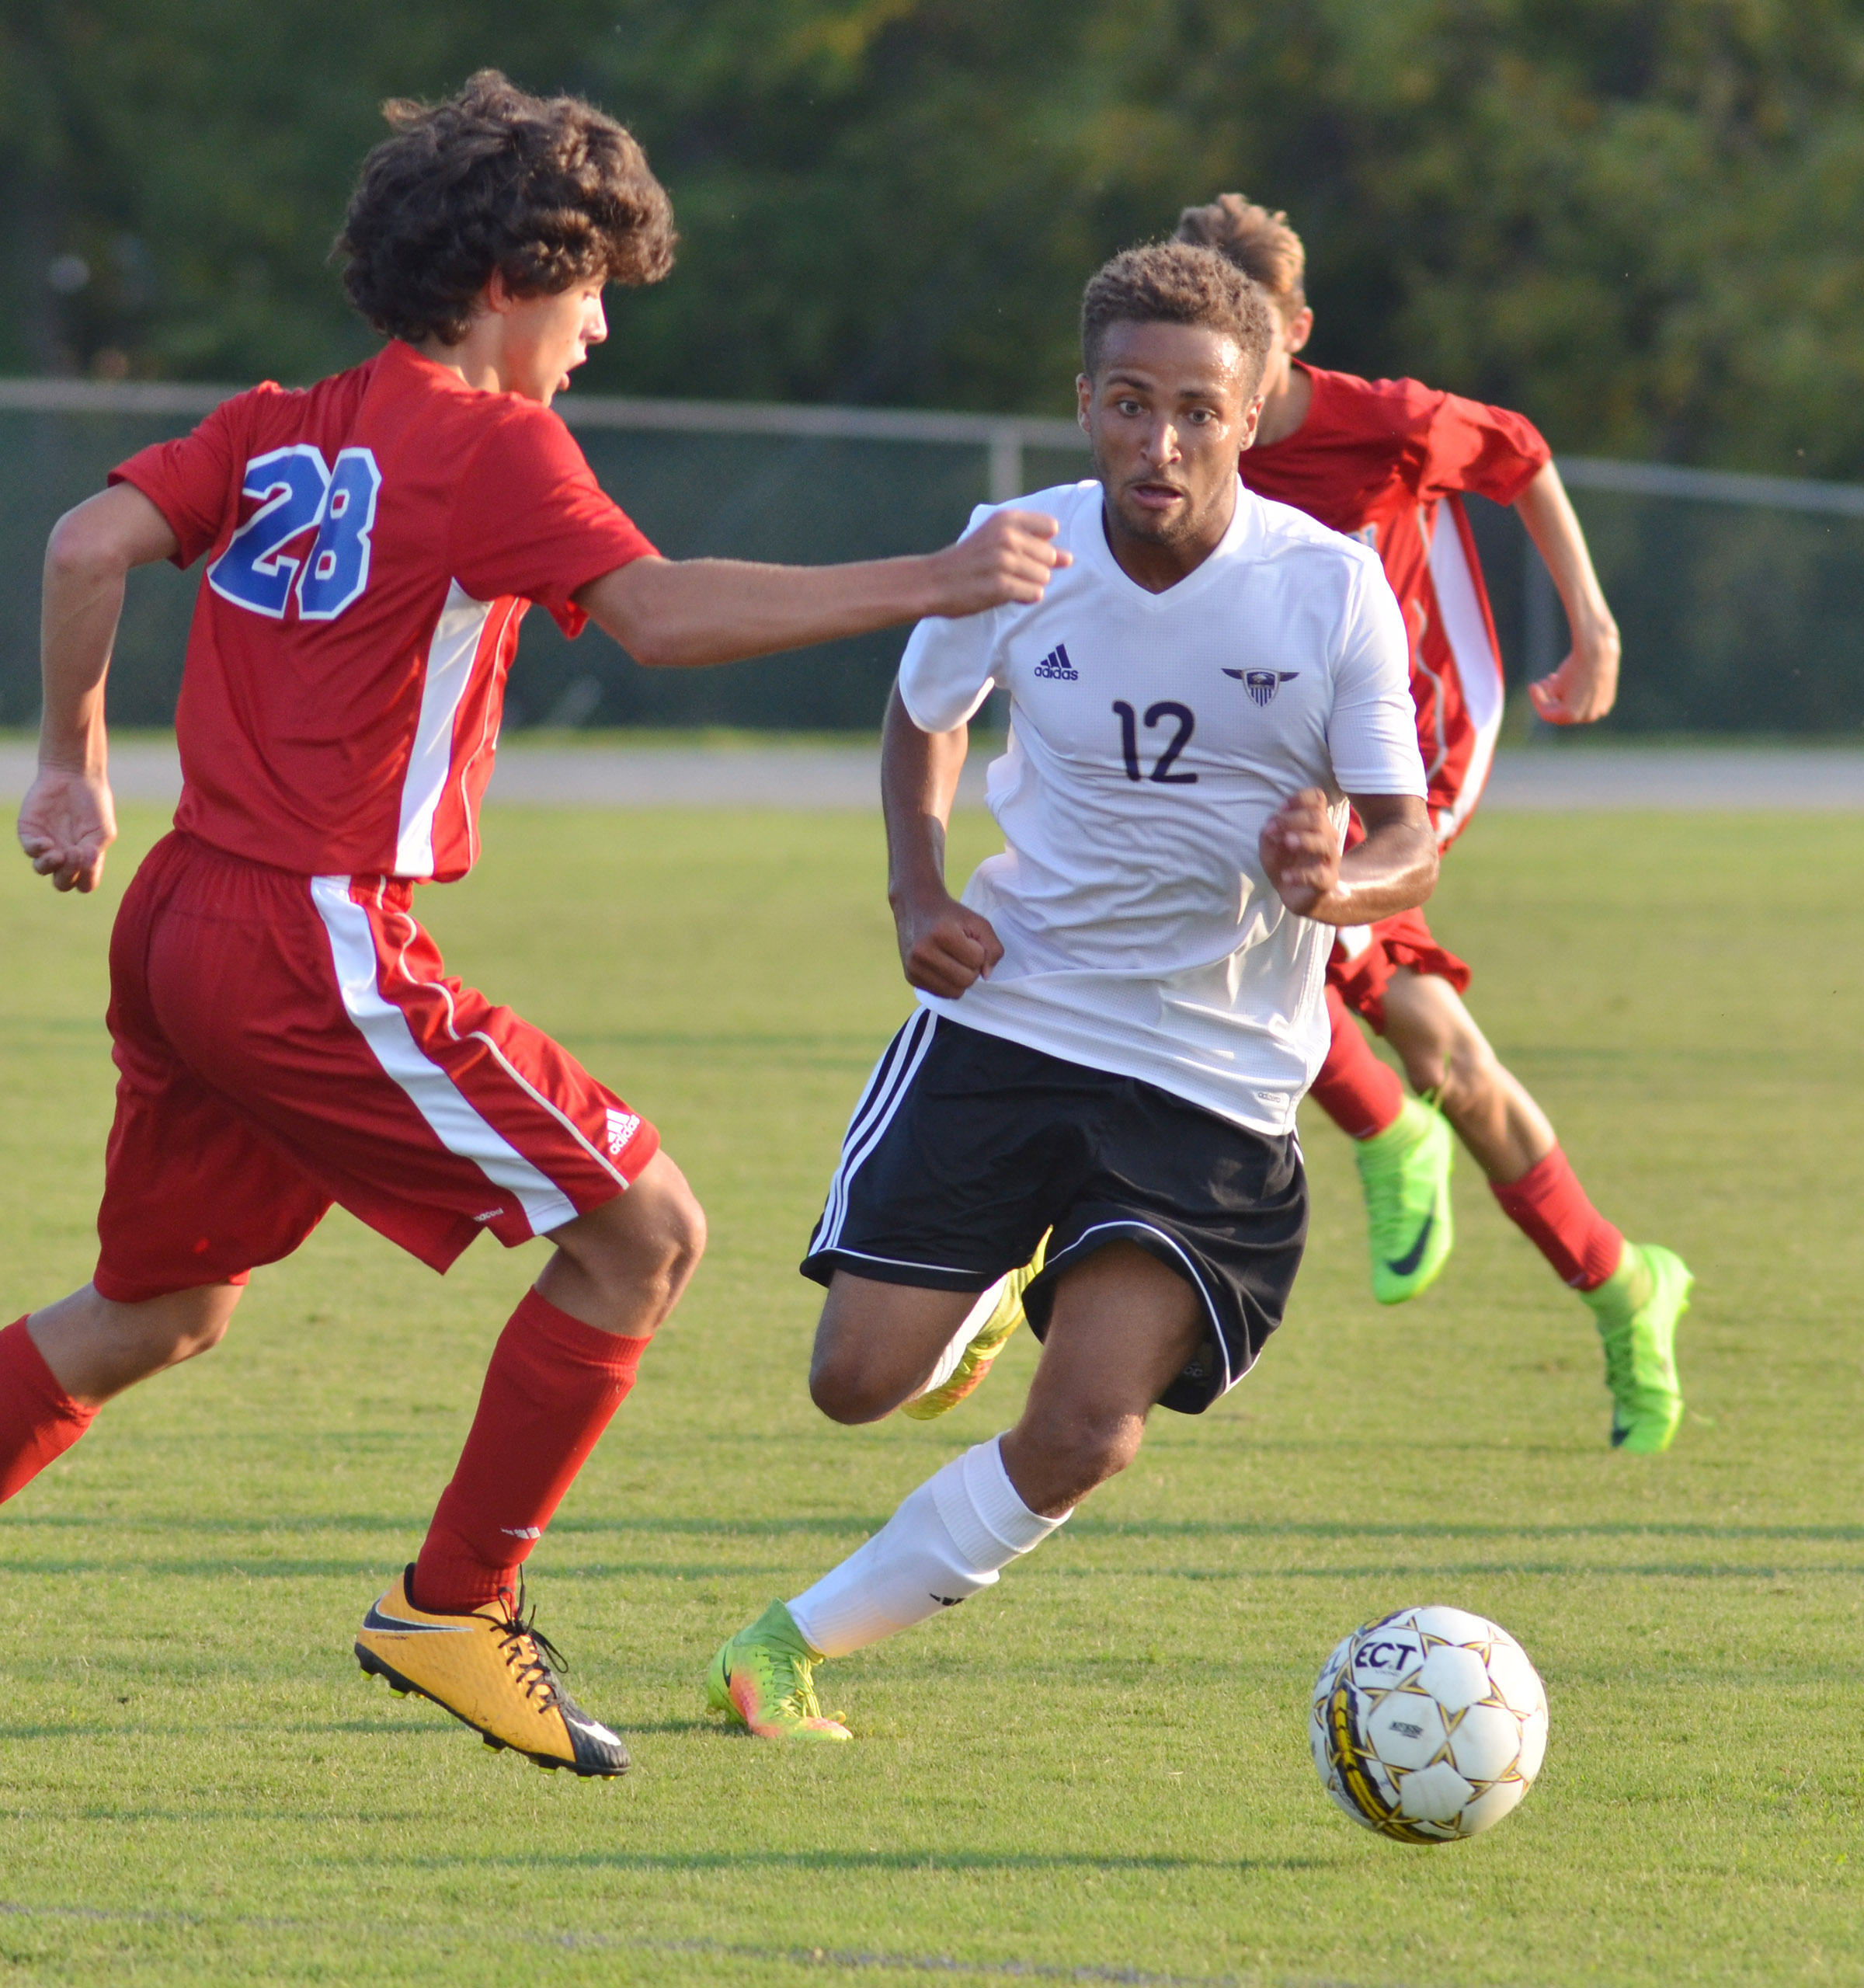 CHS senior Ethan Lay runs to the ball.